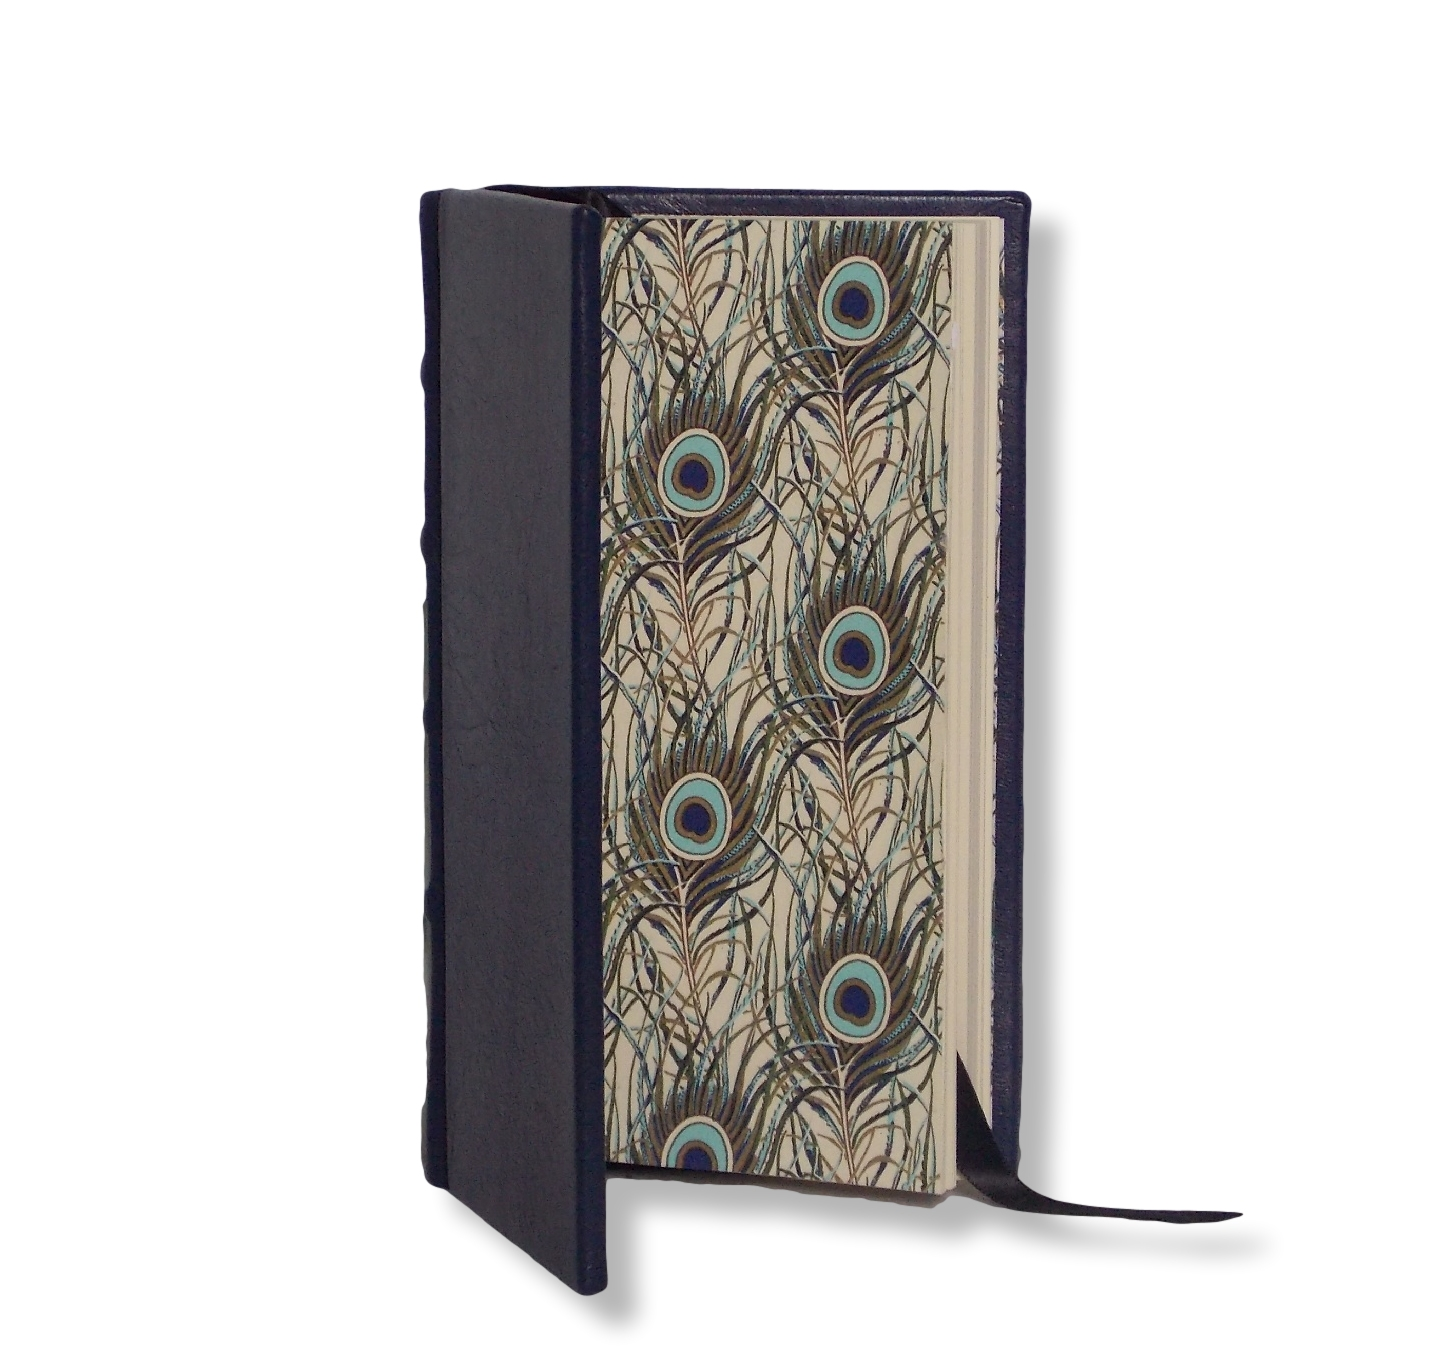 SLIMLINE LEATHER JOURNAL IN NAVY   A full navy leather bound cover with gold foiled peacock design end papers.   70 cream pages.   Classic raised bands on the spine.  Product dimensions: 17.5cm x 9.5cm  Perfect for personalisation with a name, date, initials or quotes